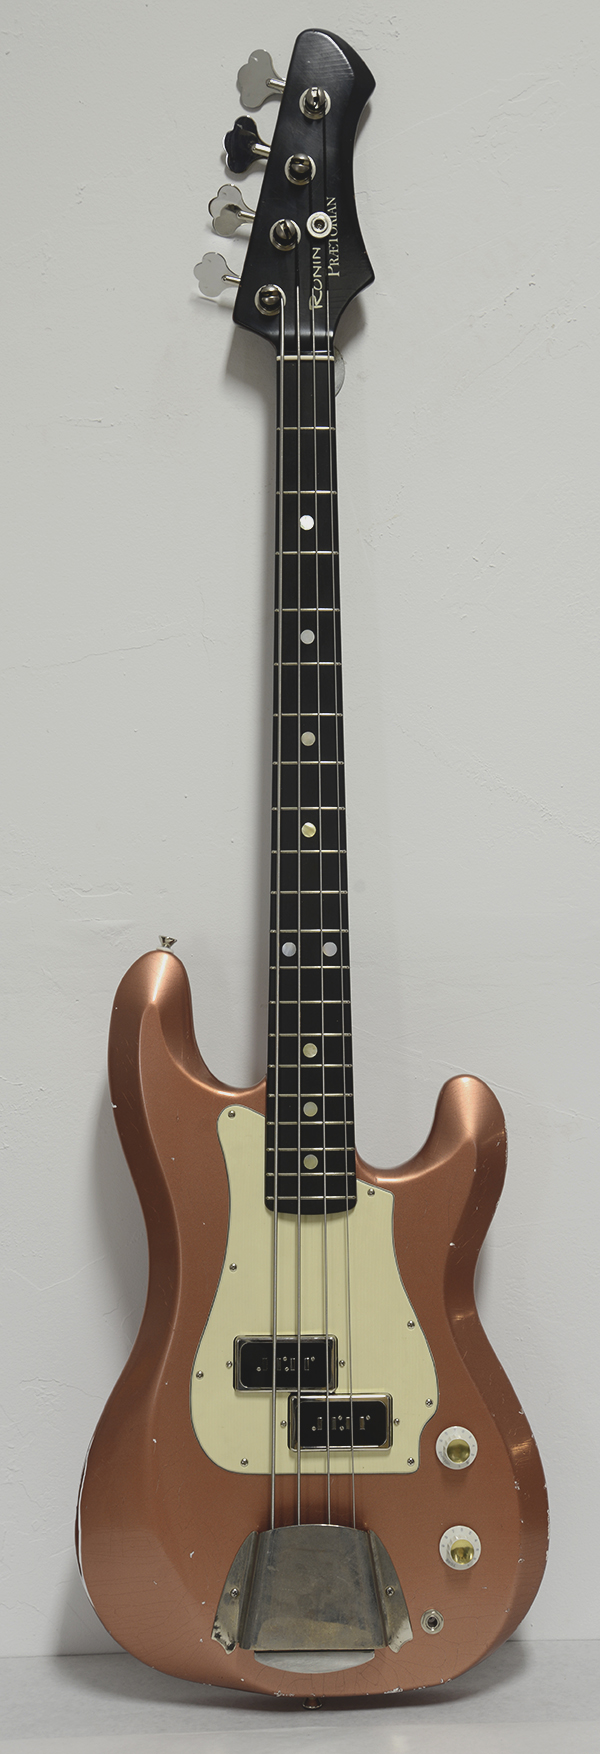 Ronin Prætorian Bass in Suntan Copper